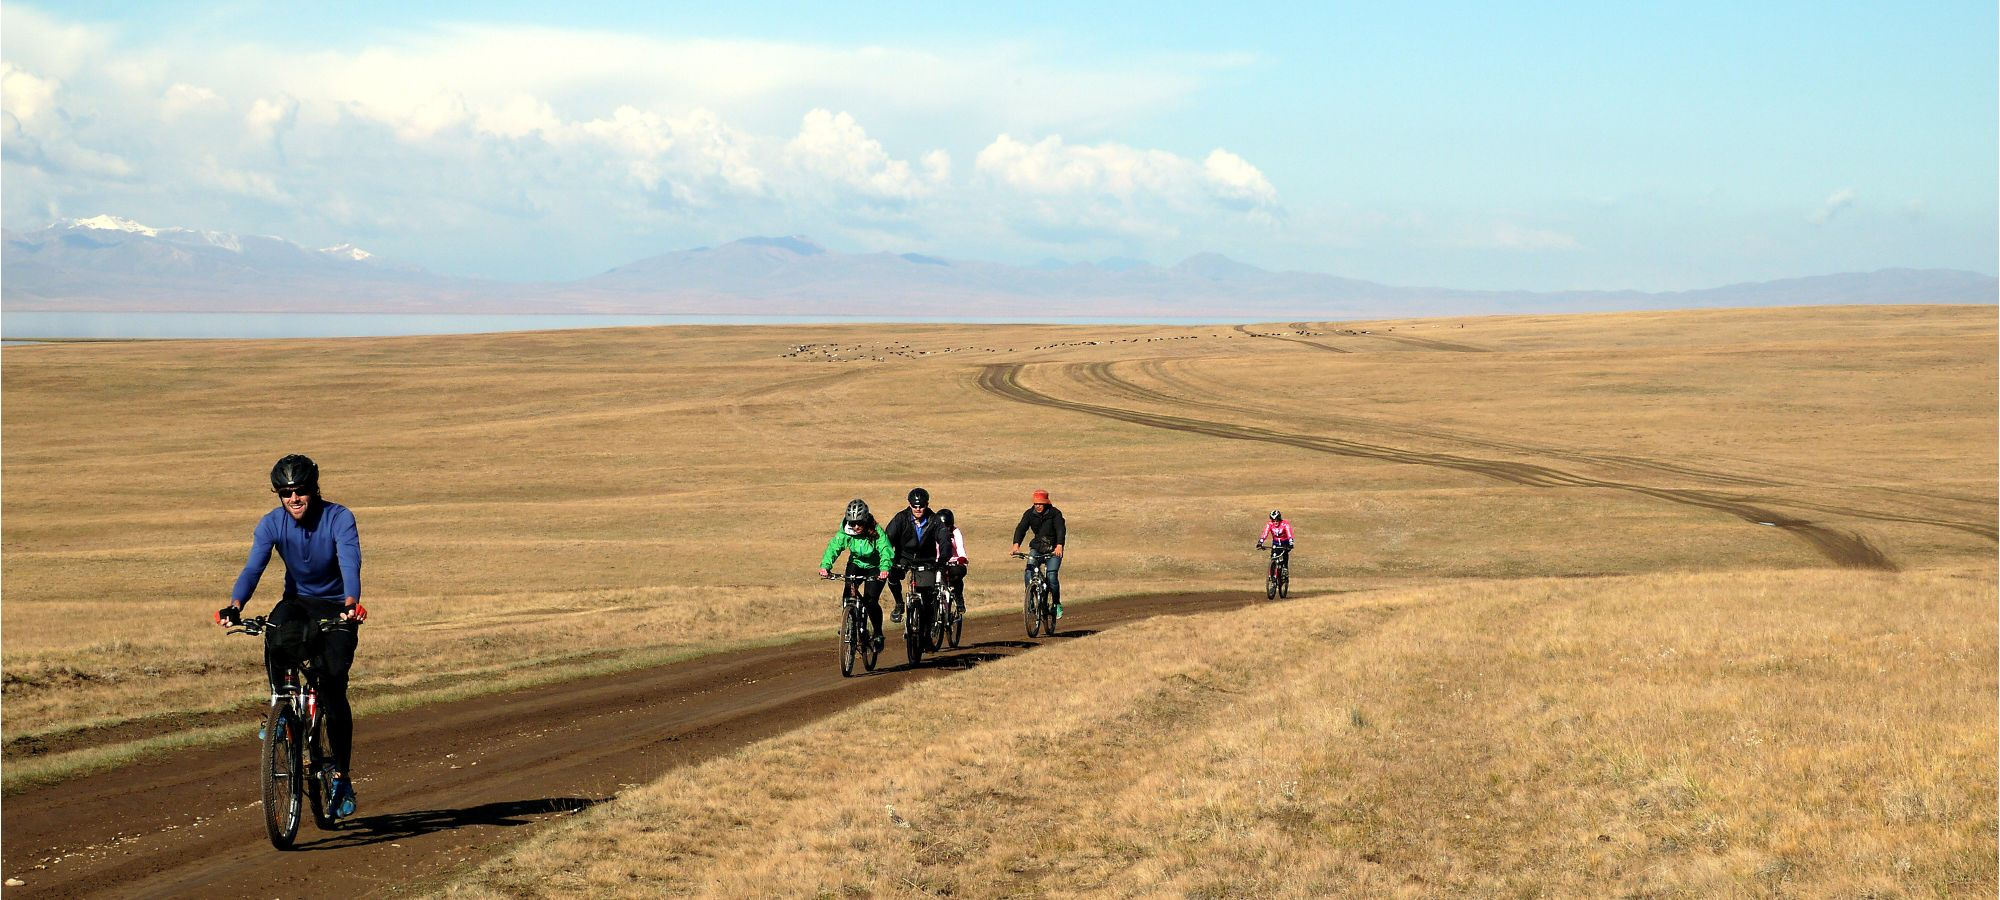 cycling Central Tien Shan mountains